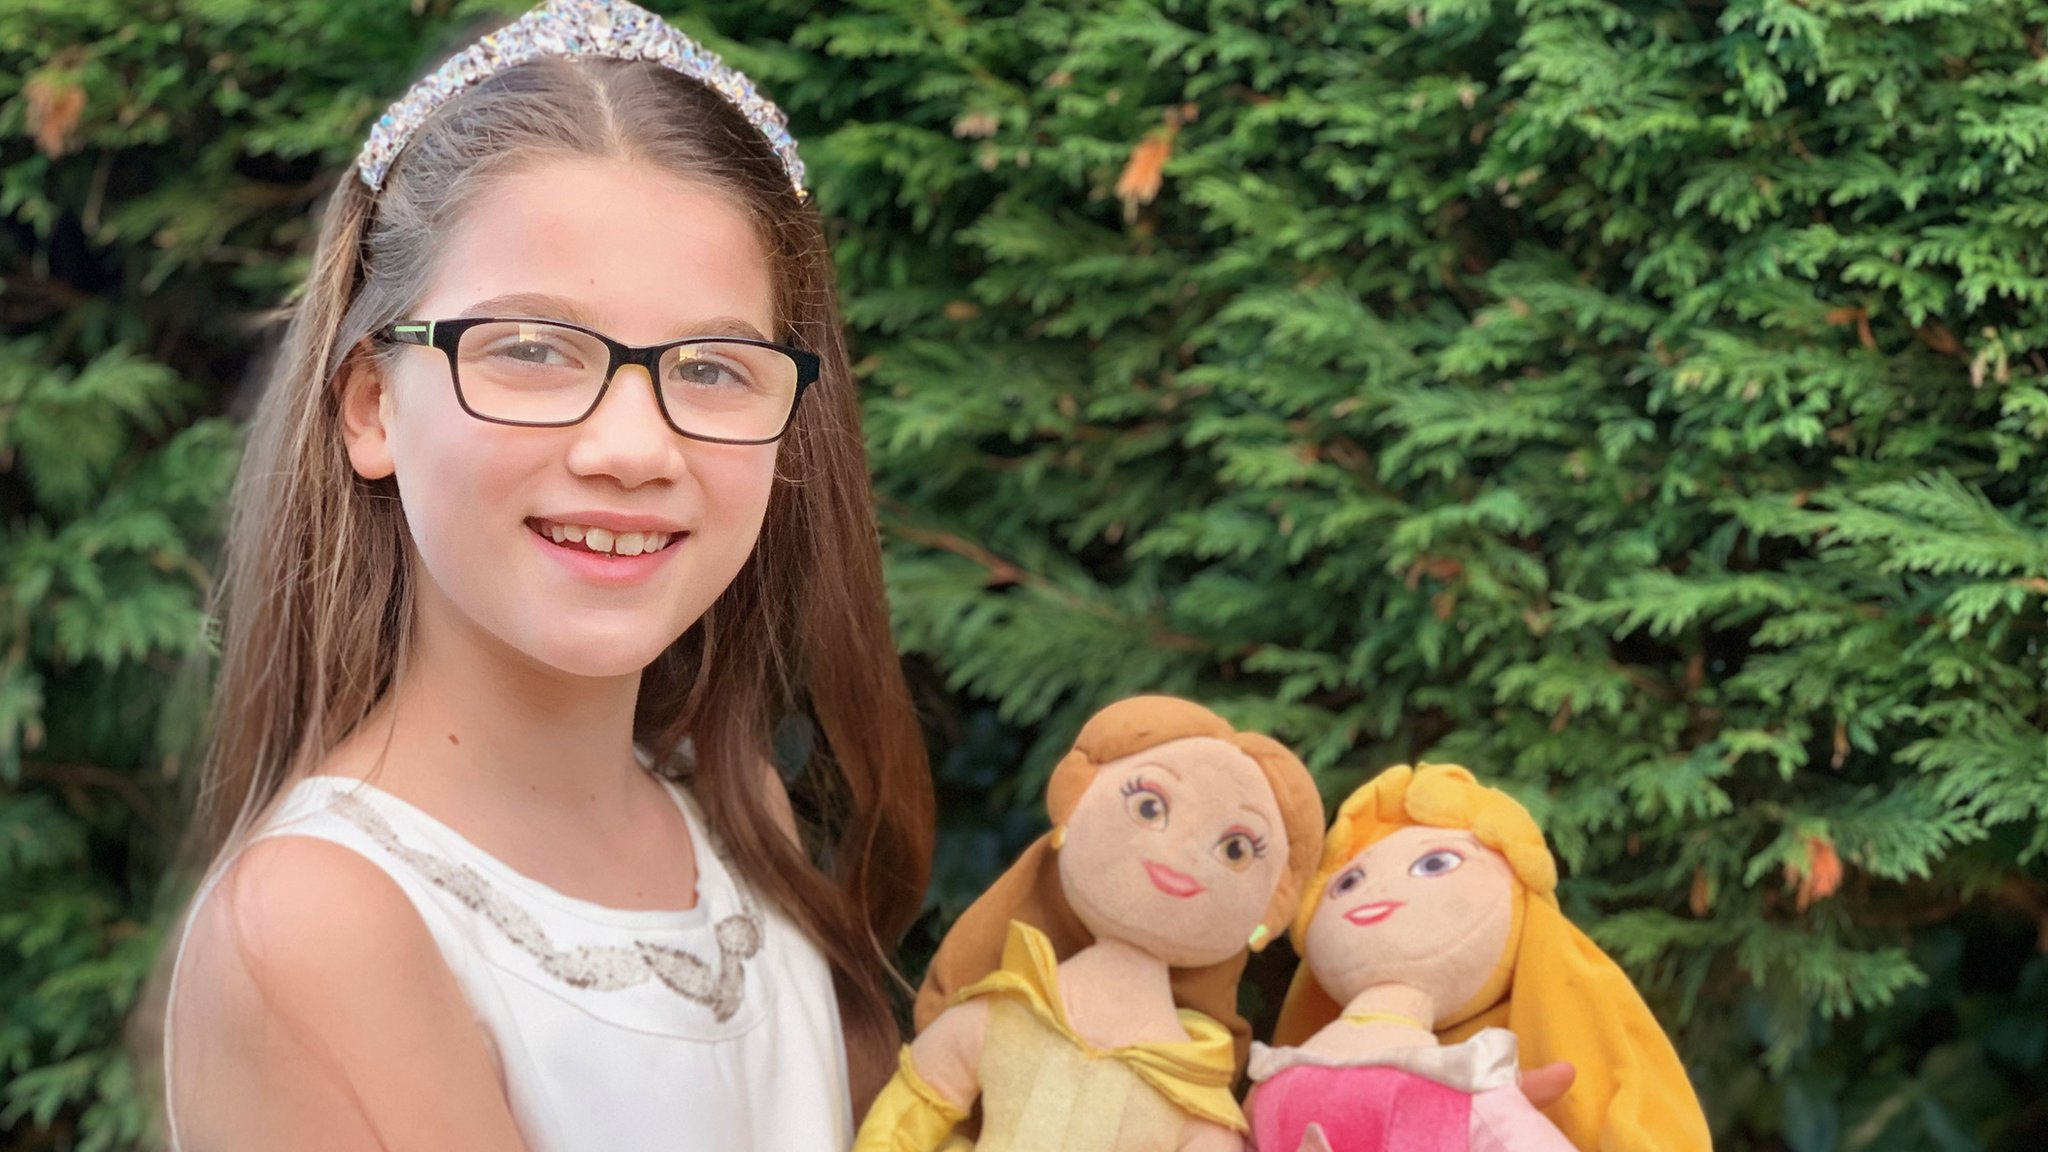 Disney Girl Asks Why Movie Princesses Never Wear Glasses Cbbc